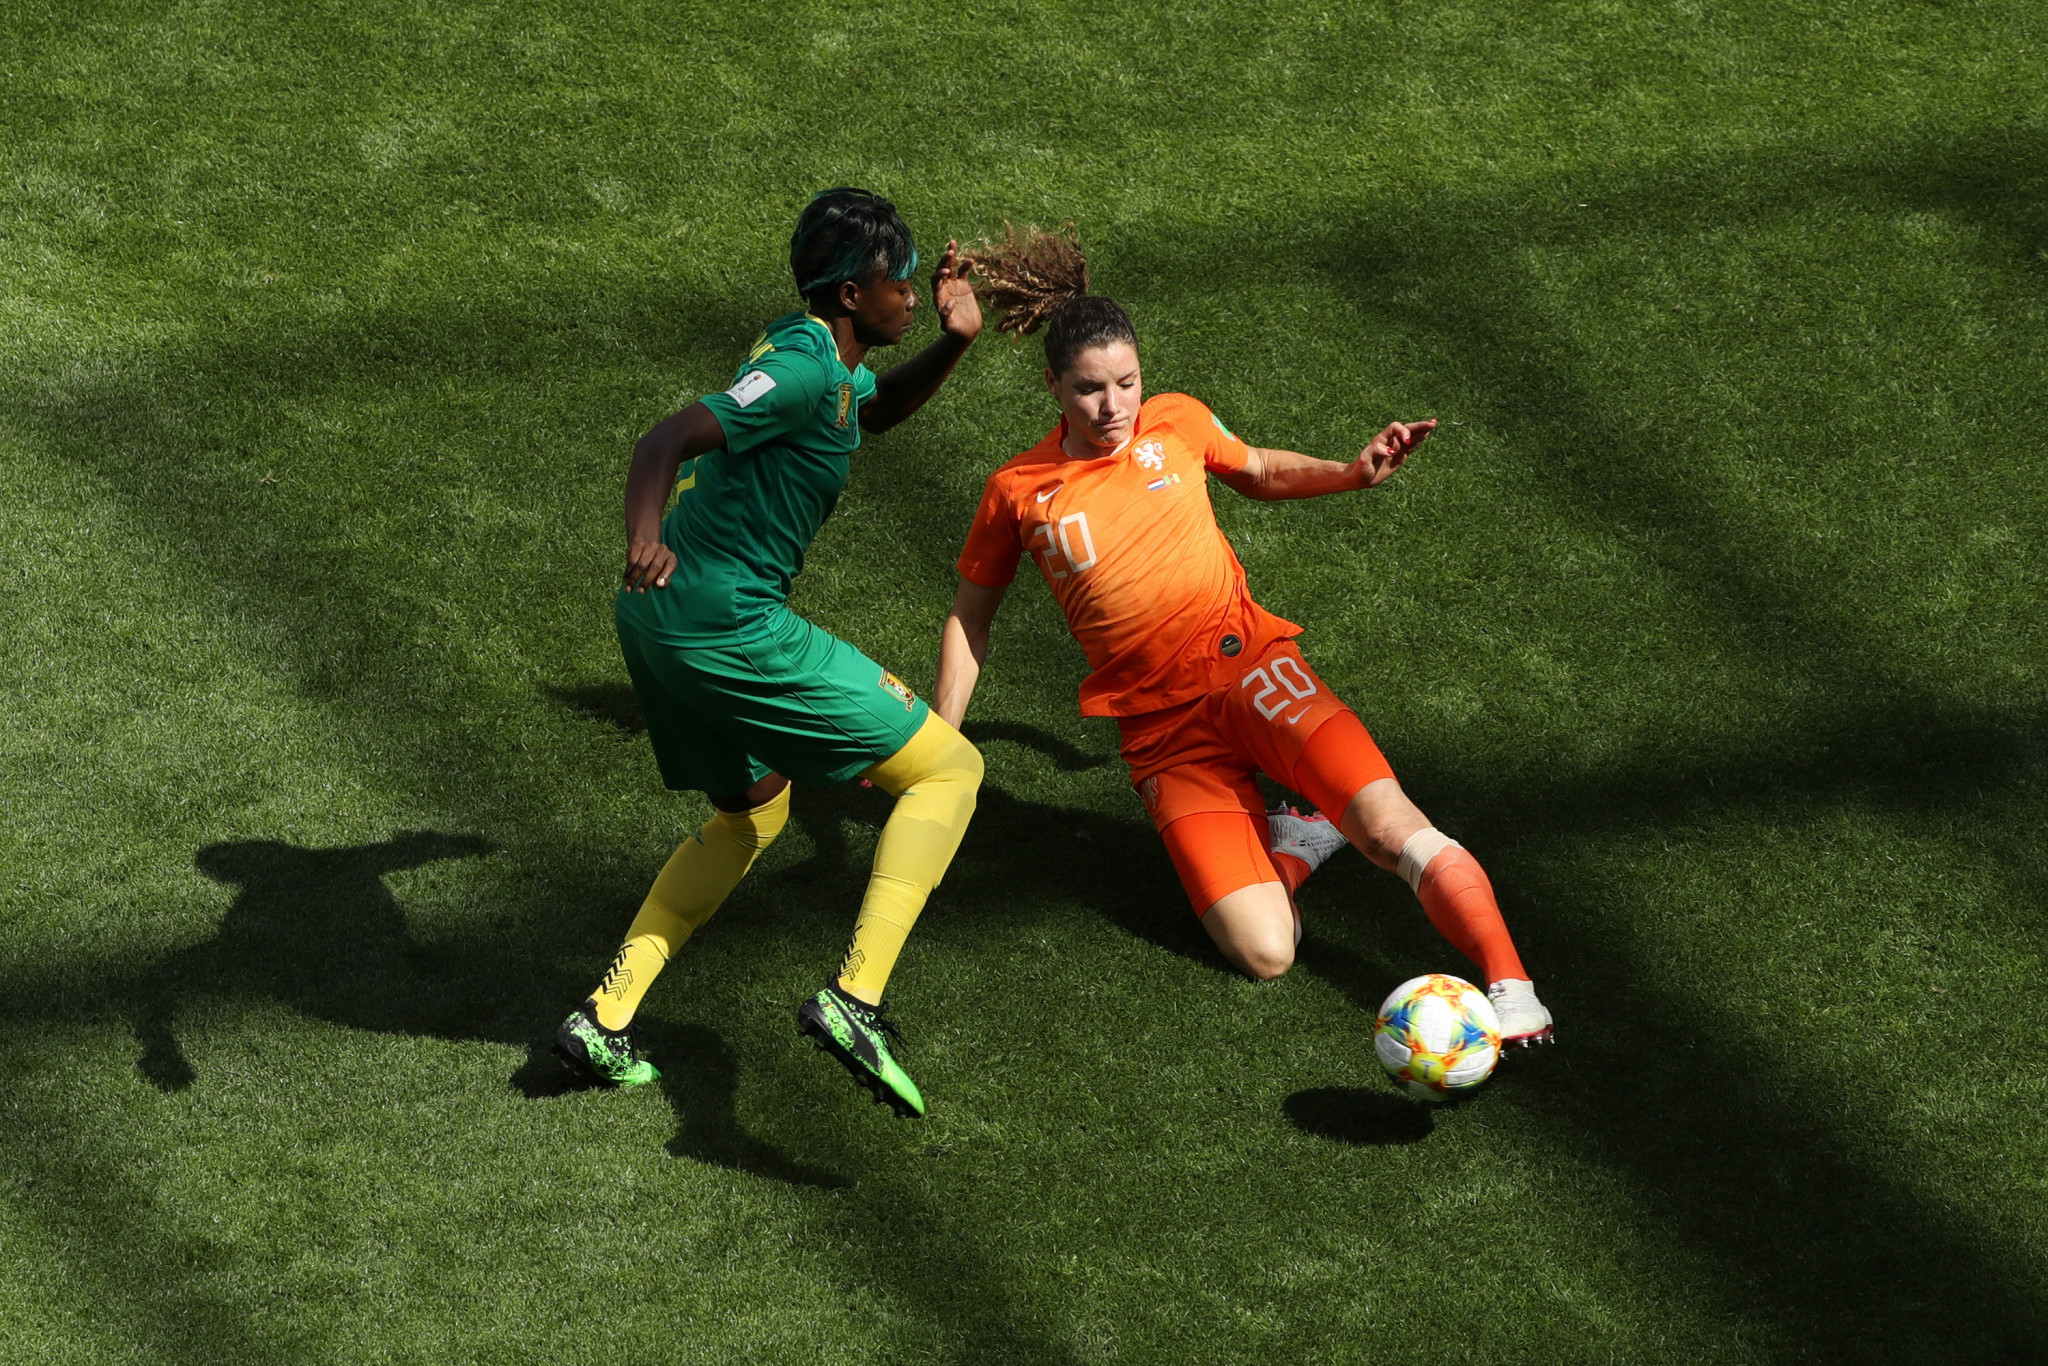 The Netherlands defeated Cameroon to qualify for the FIFA Women's World Cup knockout stage ©Getty Images